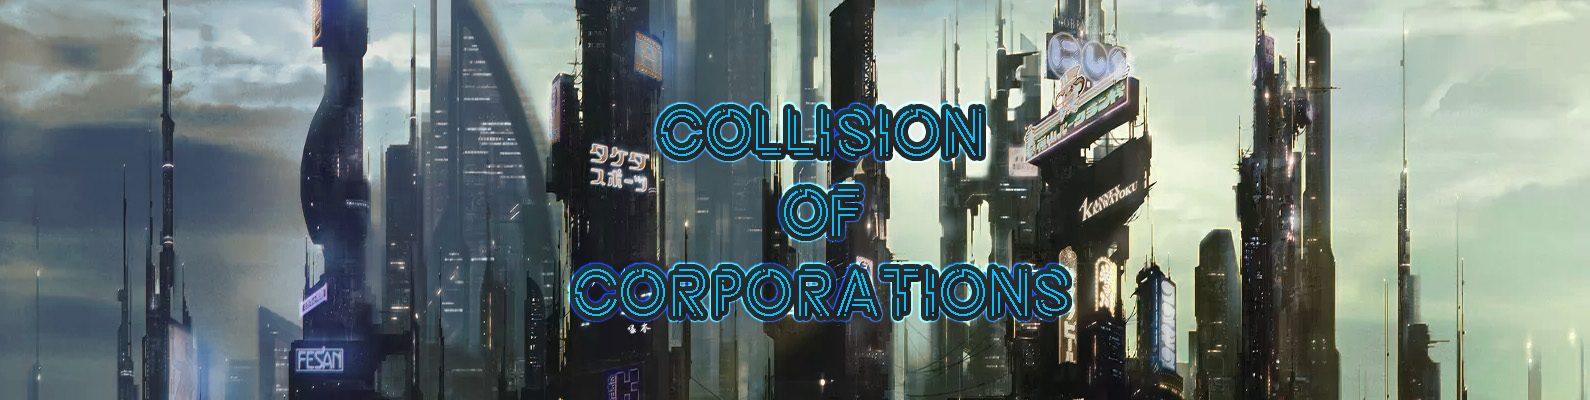 Название | Collision of corporations набор команды (RTS ССG)